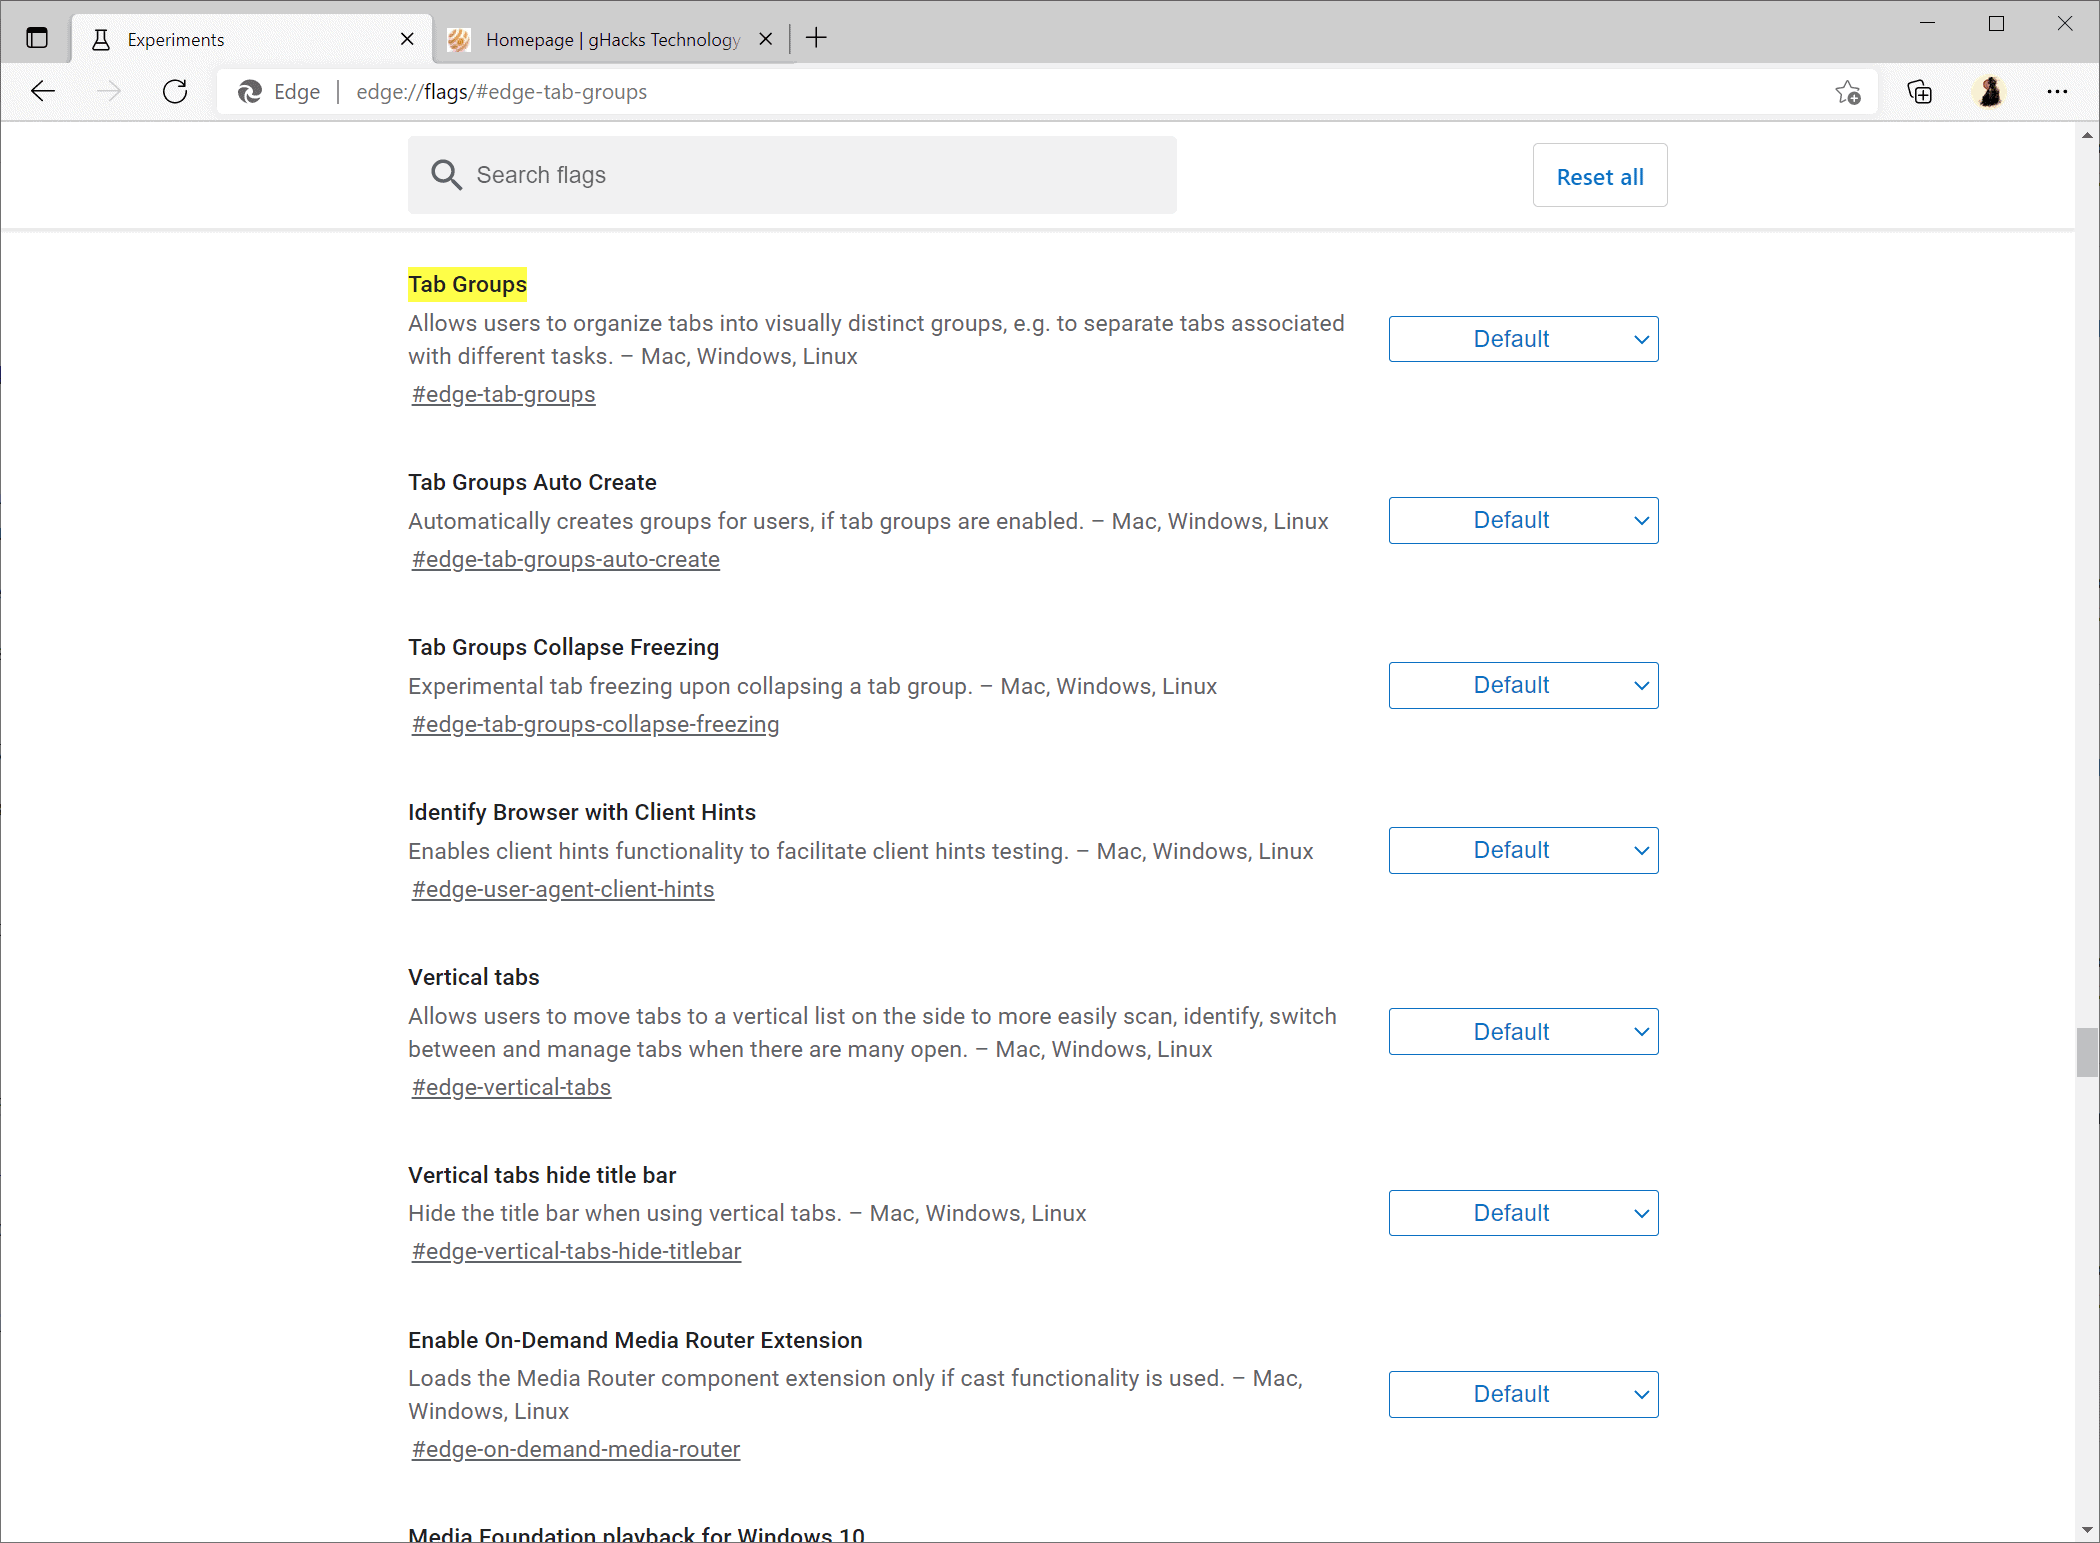 microsoft edge 2021 upcoming features